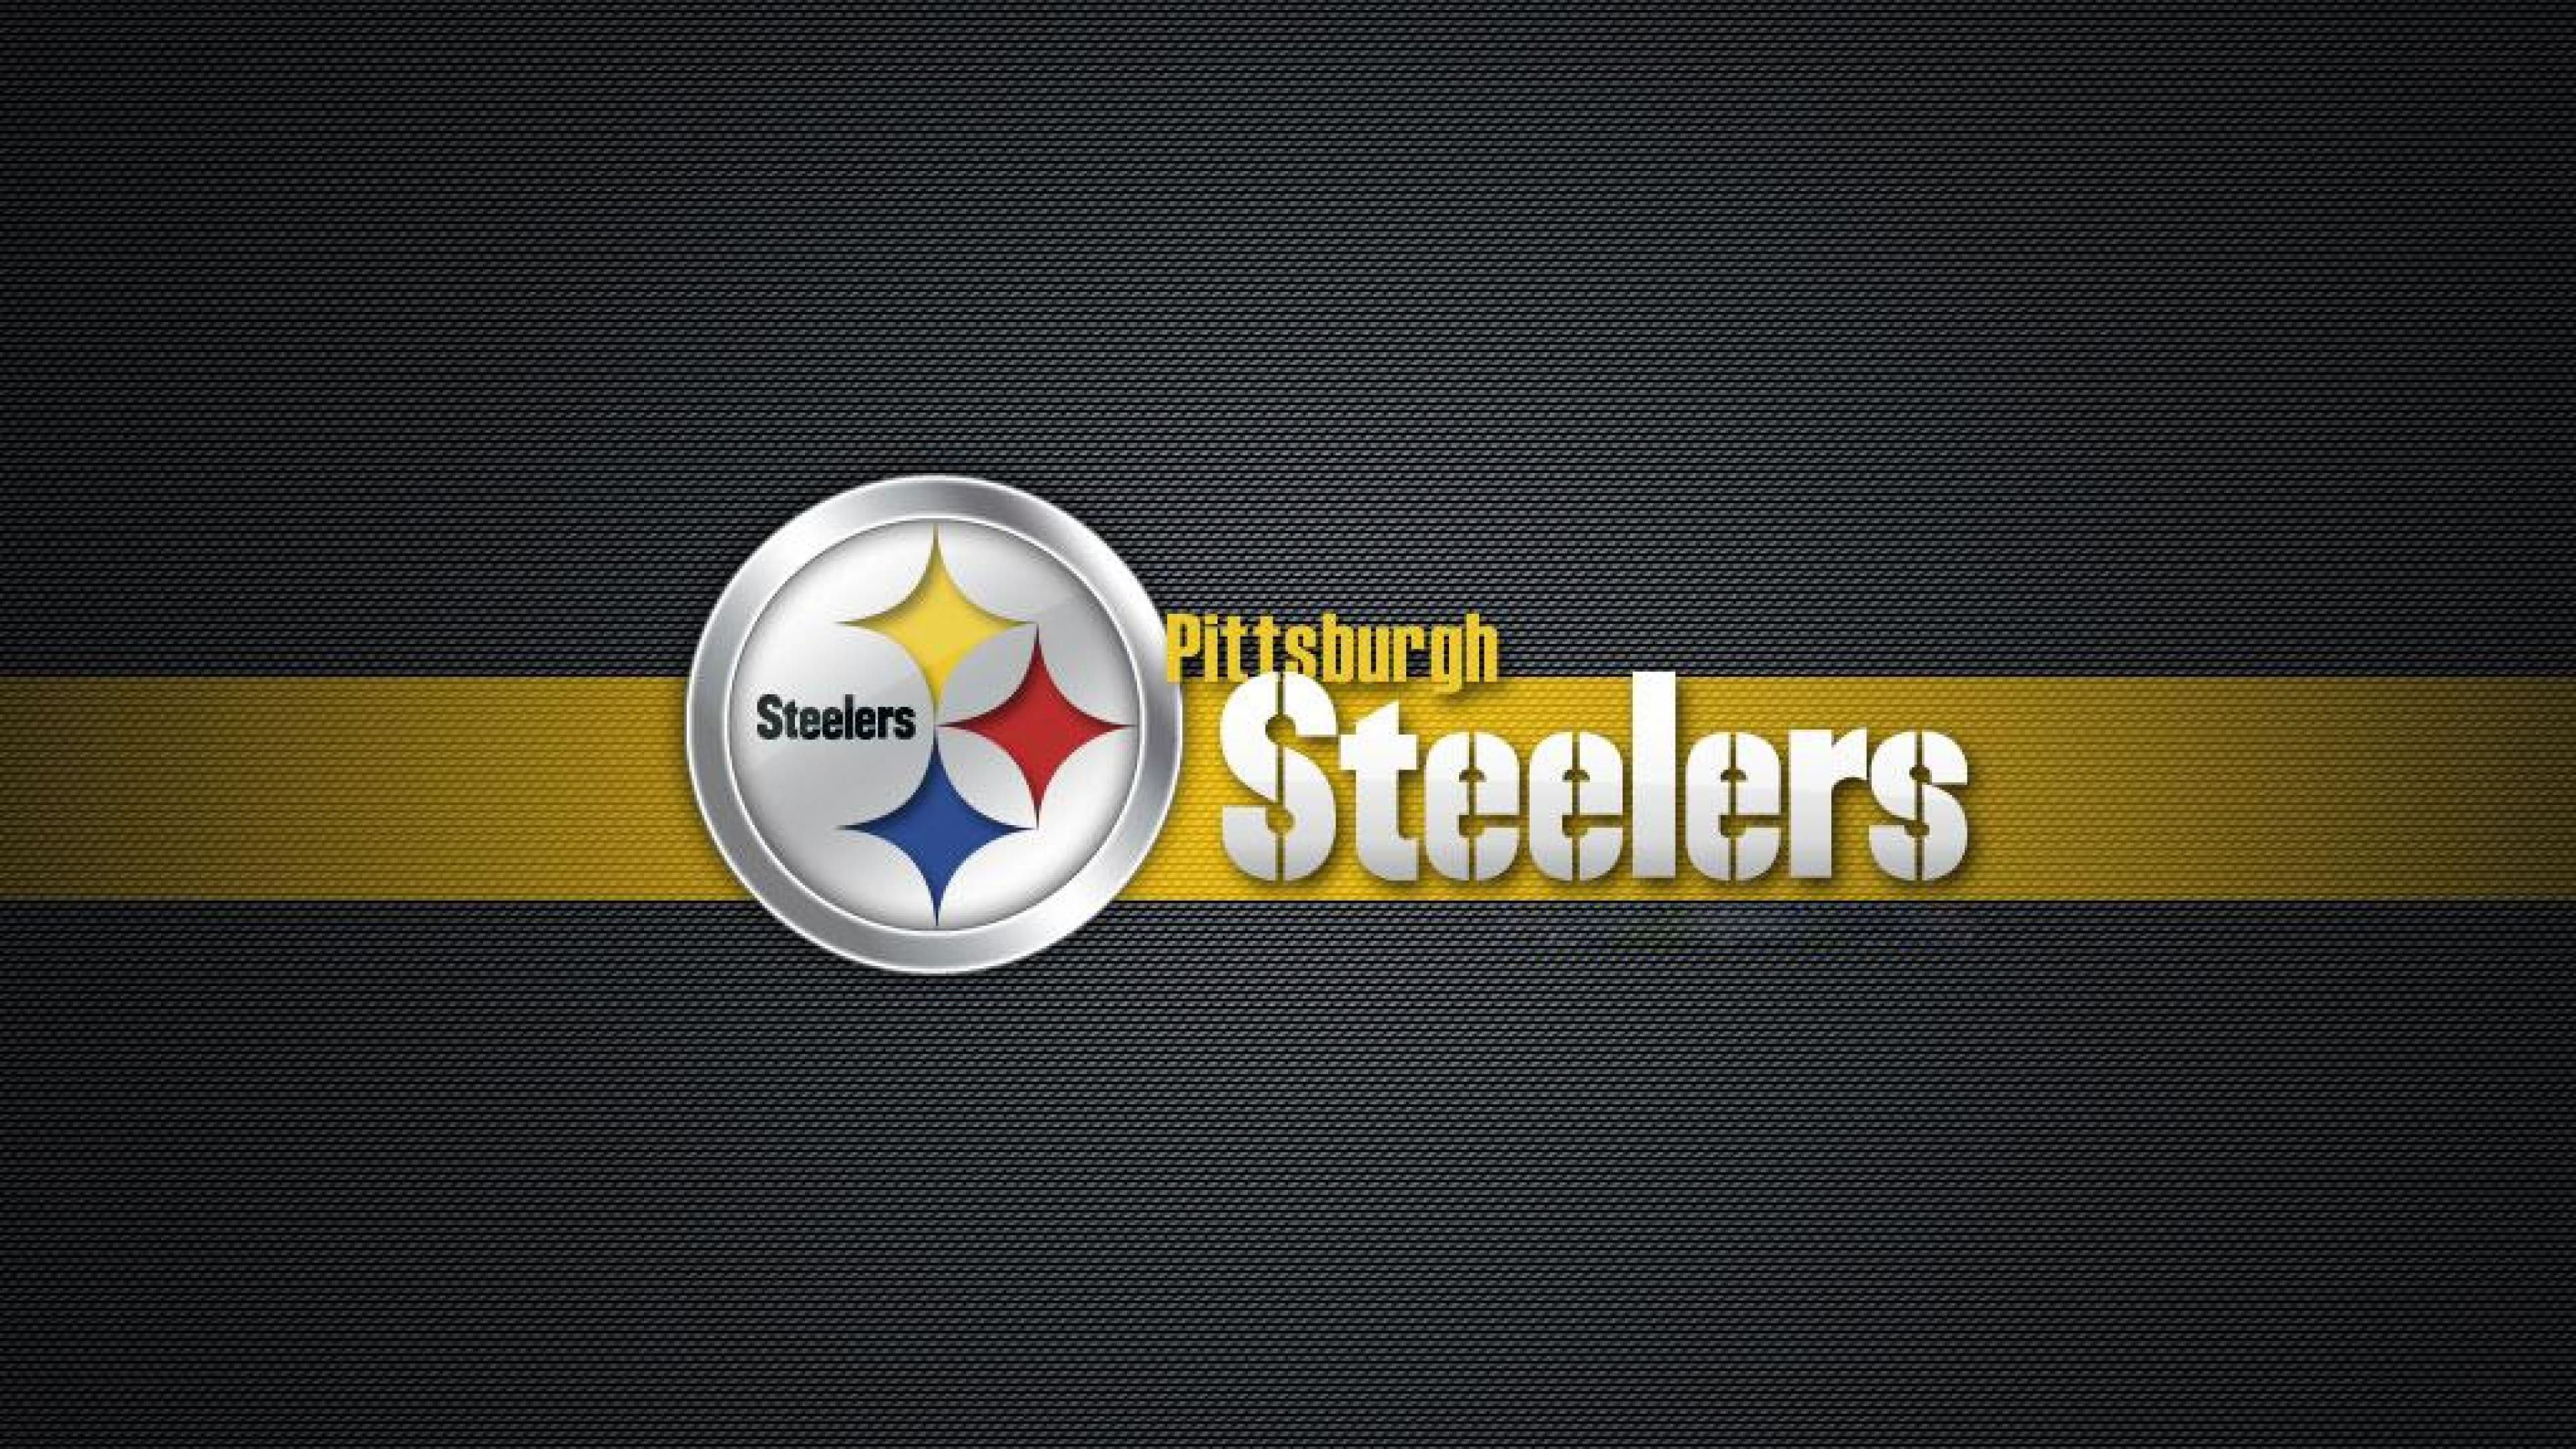 Sport Pittsburgh Steelers Logo Wallpaper HD. Sapos